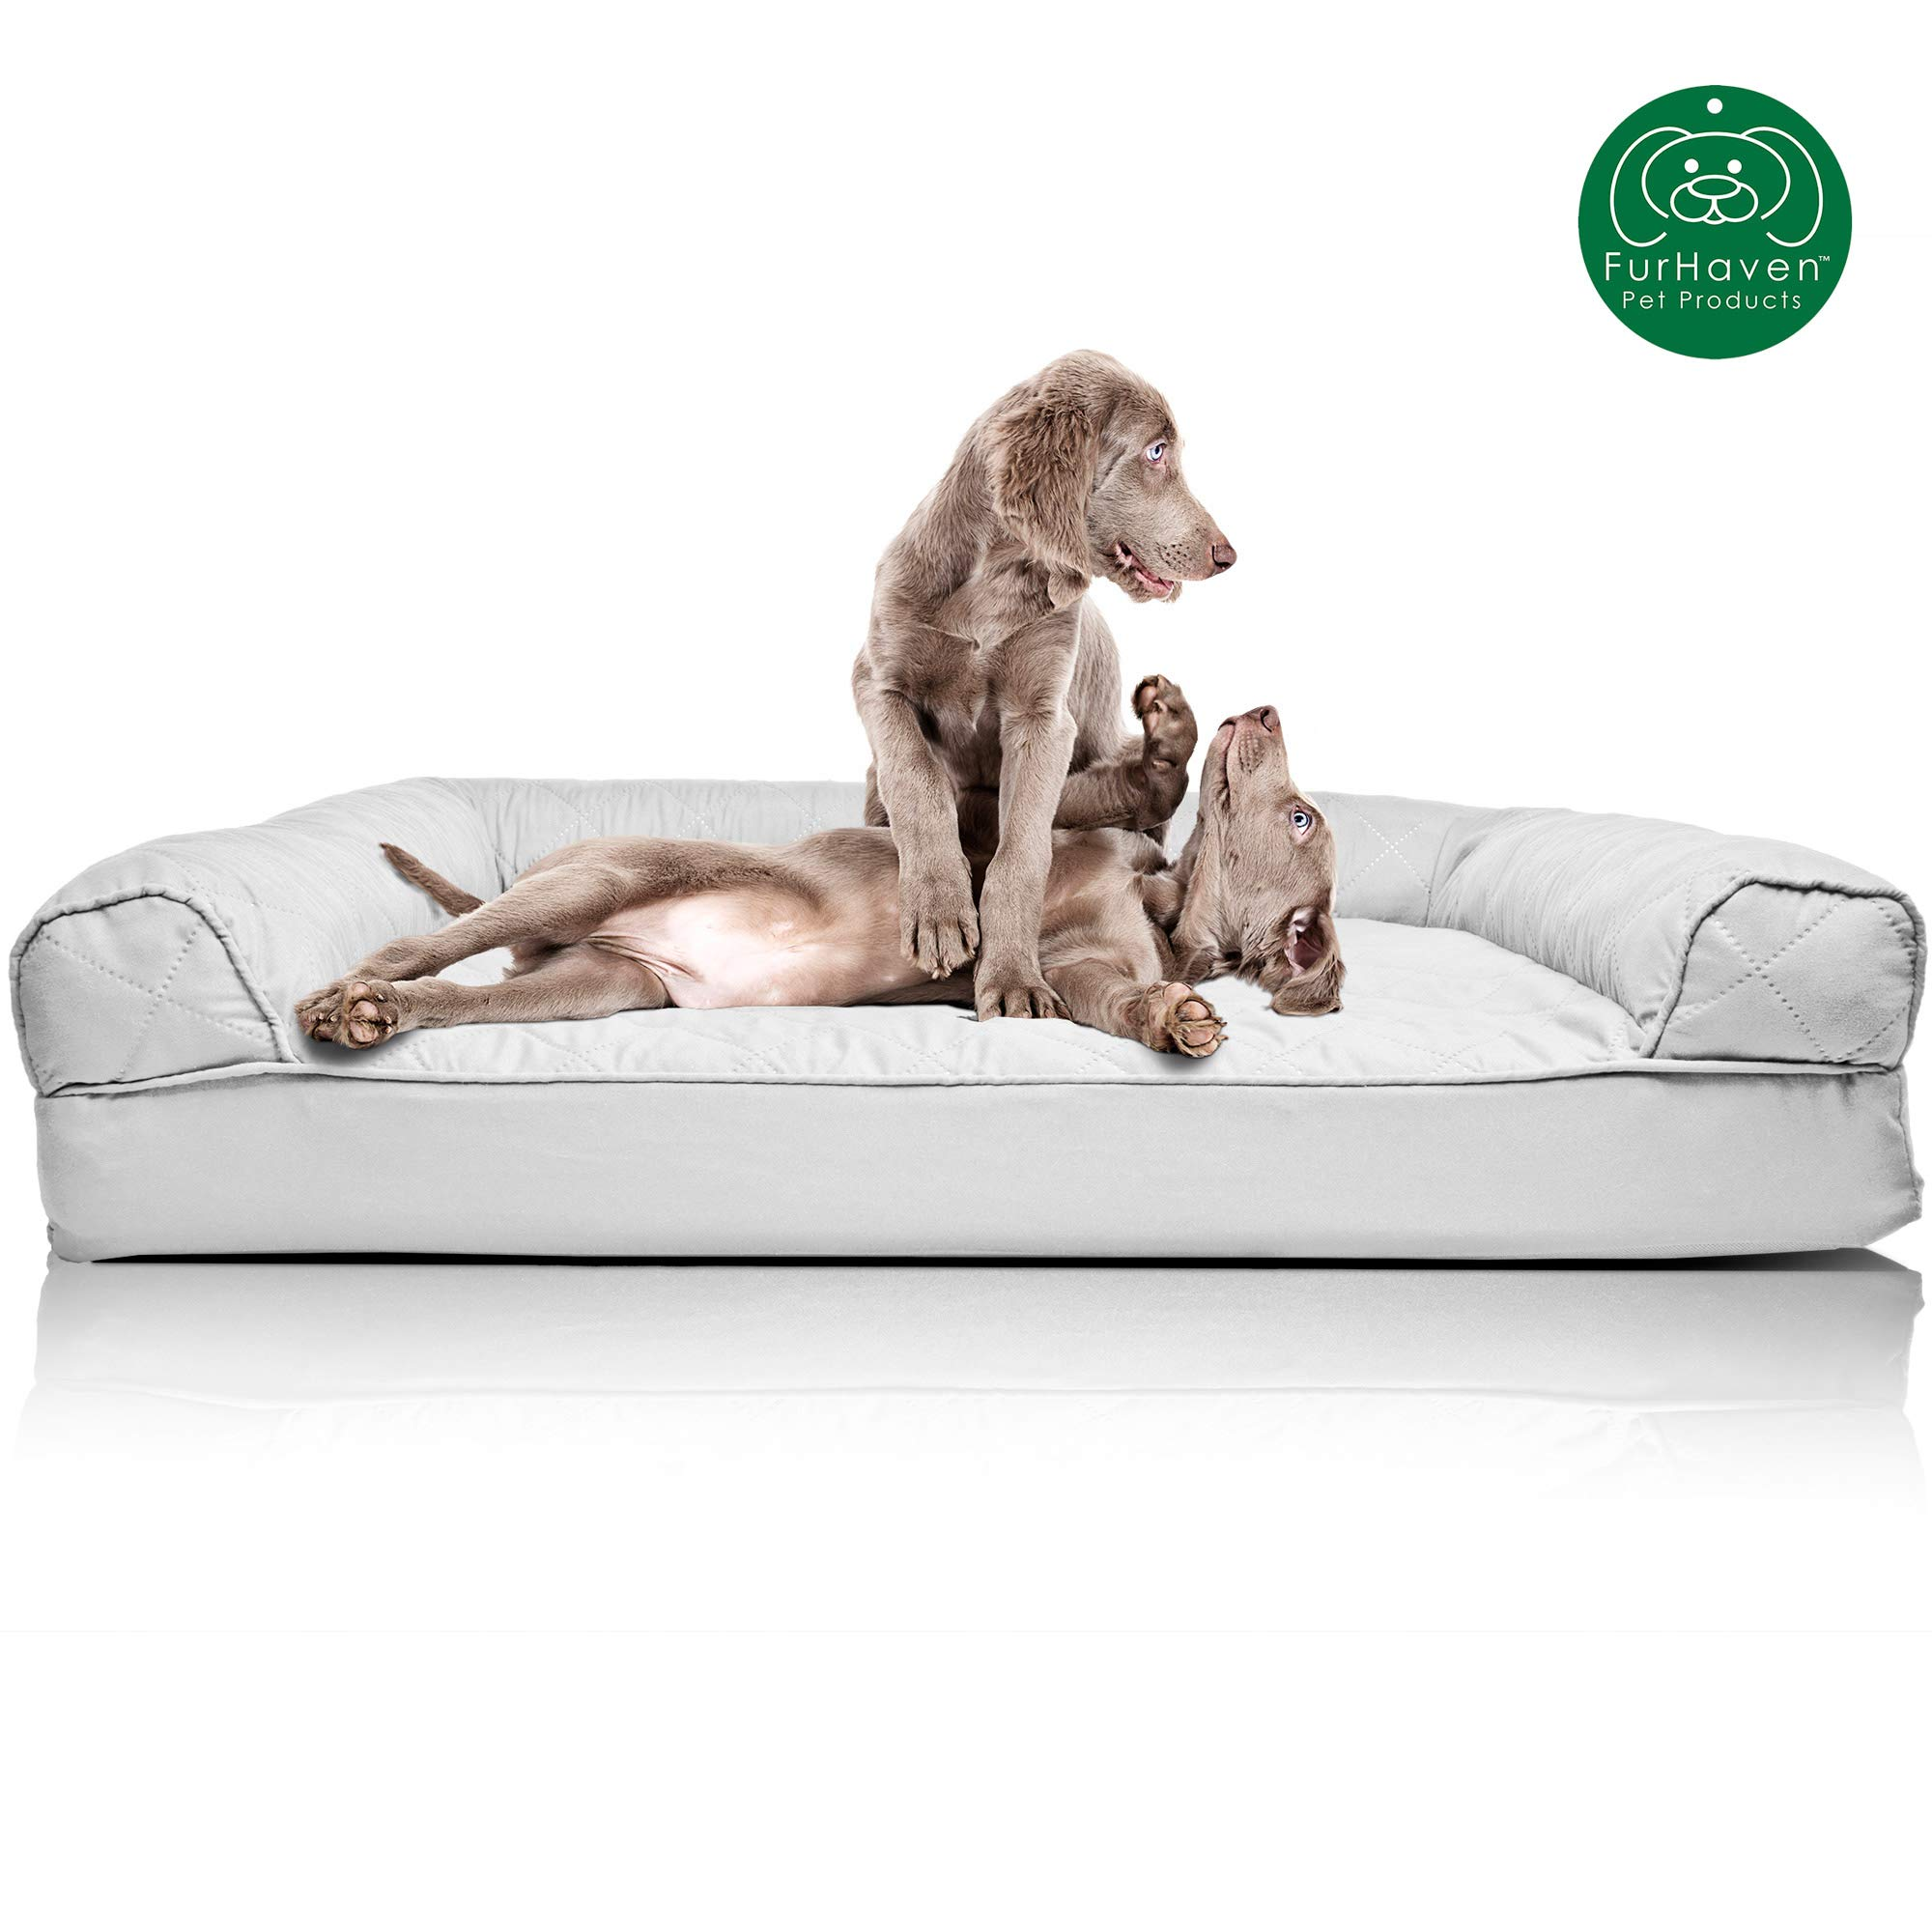 Furhaven Pet Dog Bed | Orthopedic Quilted Traditional Sofa-Style Living Room Couch Pet Bed w/ Removable Cover for Dogs & Cats, Silver Gray, Jumbo by Furhaven